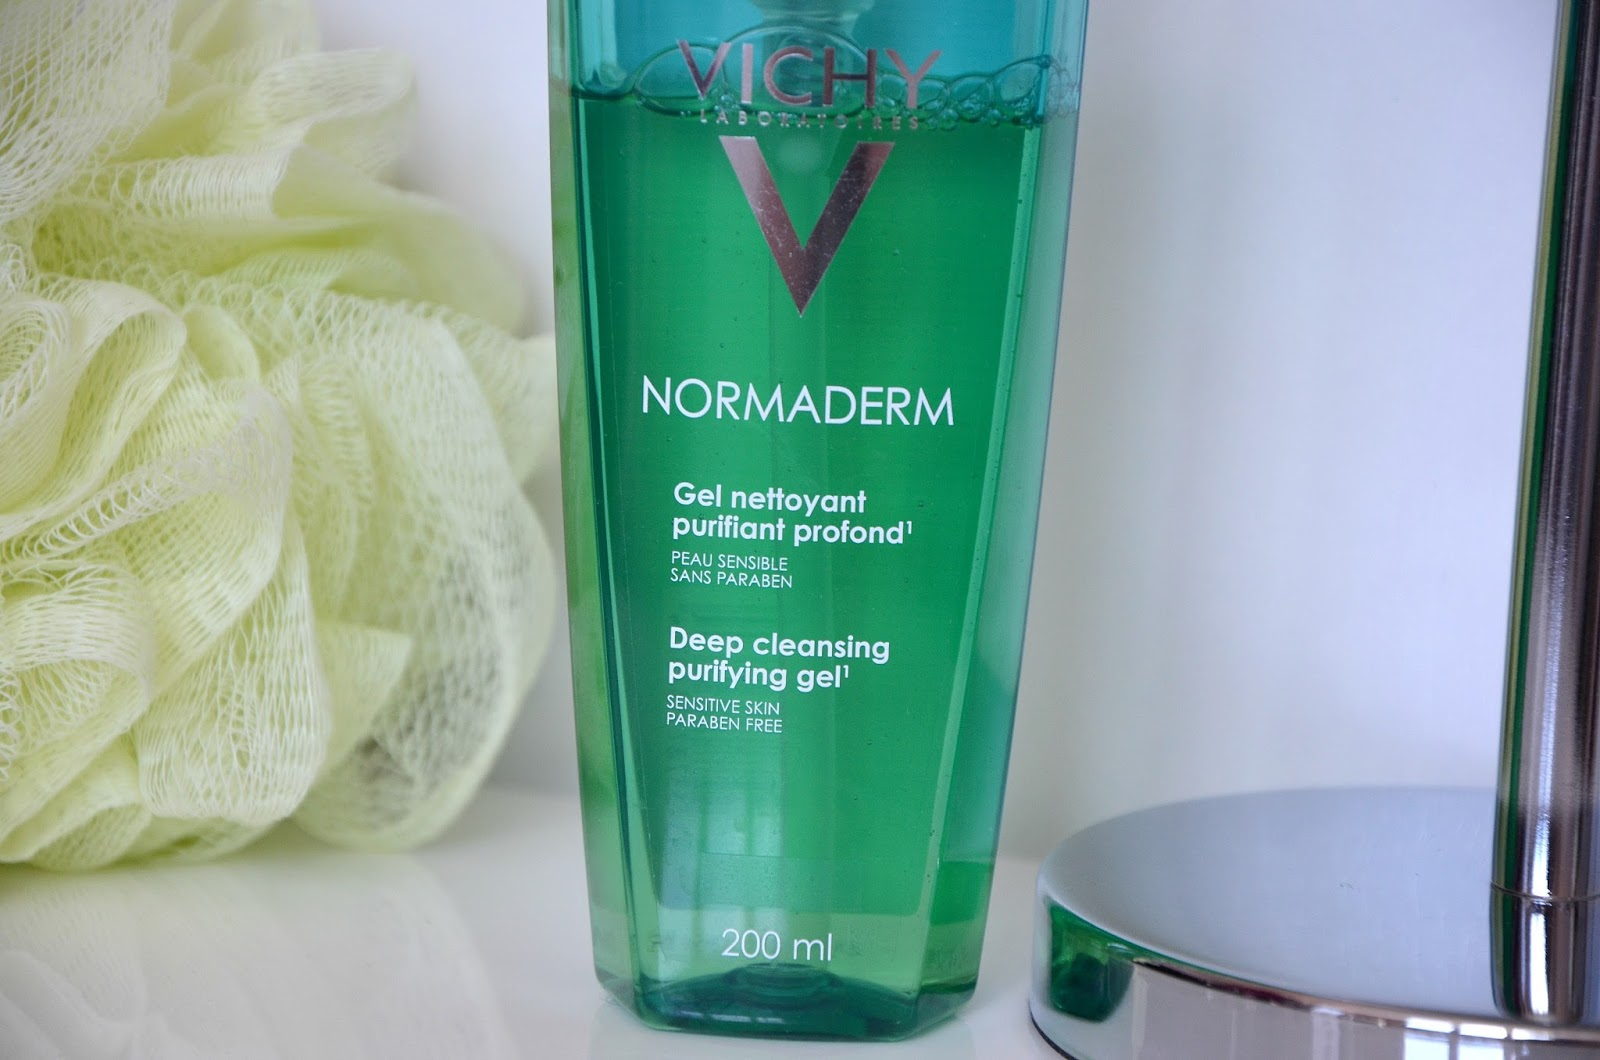 Vichy Gel nettoyant purifiant profond' Normaderm